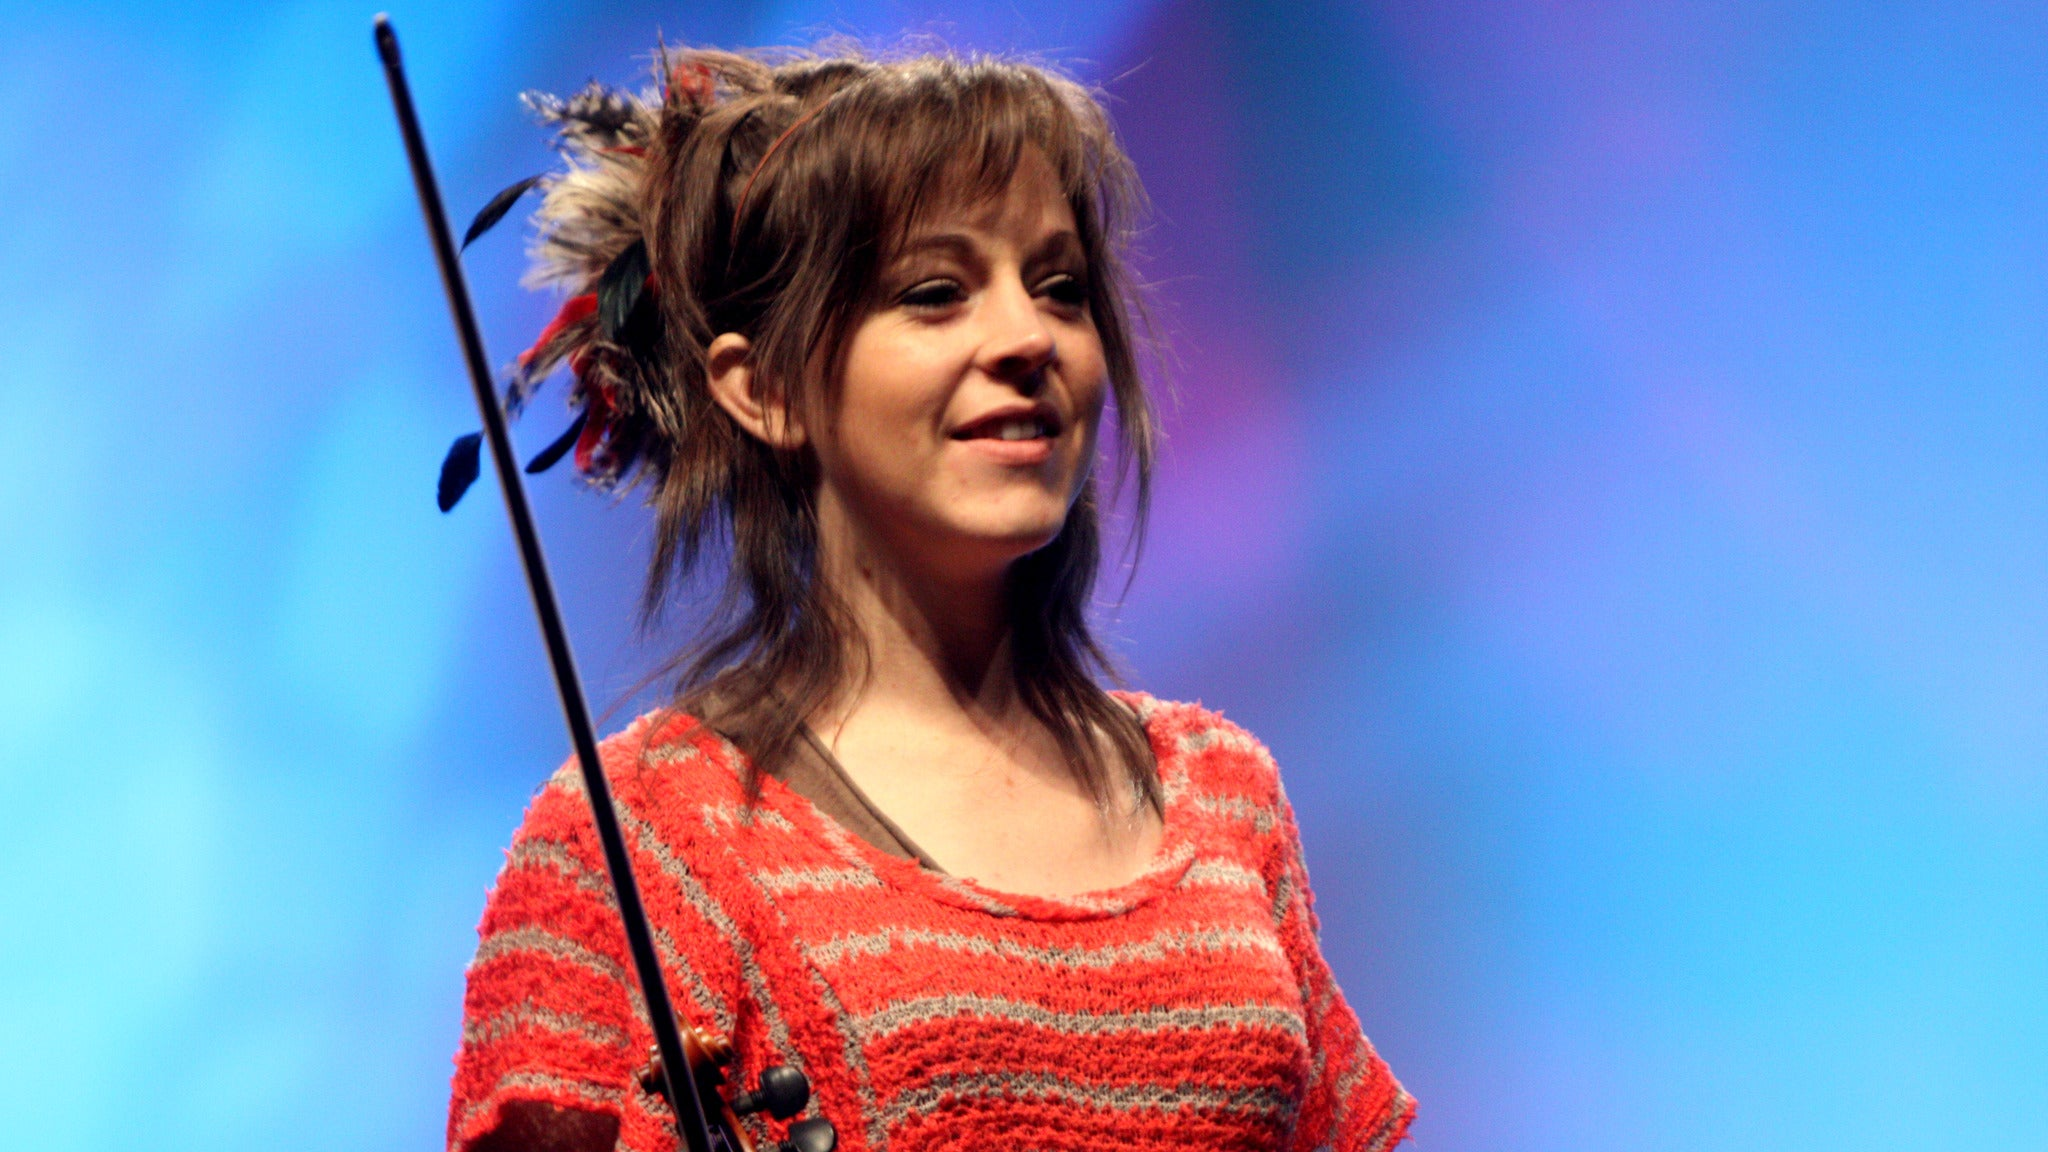 SORRY, THIS EVENT IS NO LONGER ACTIVE<br>Lindsey Stirling - Brave Enough Tour 2016 - Washington, DC 20006